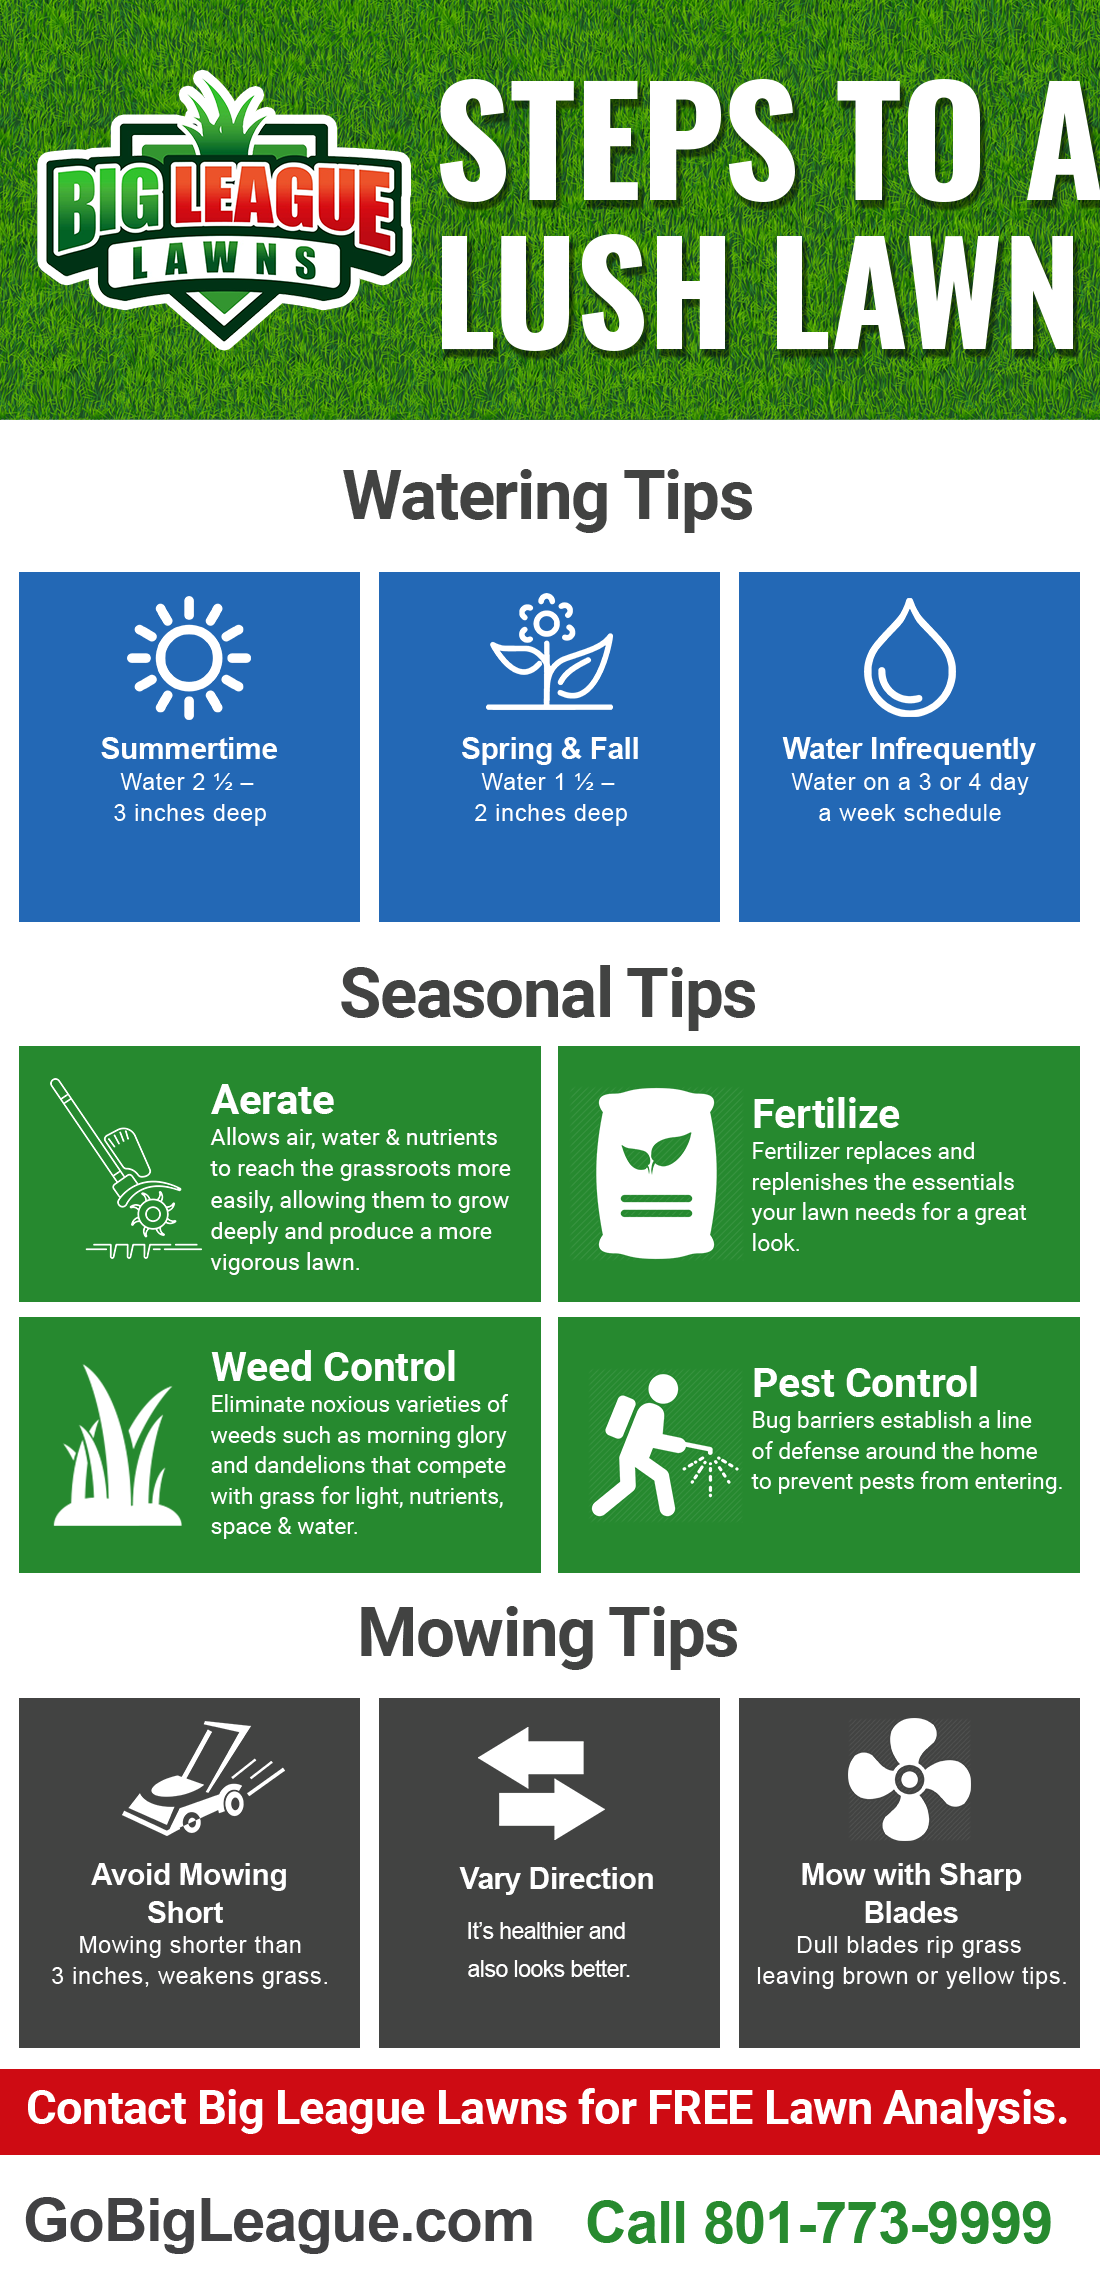 Steps to a lush lawn info-graphic - Big League Lawns in Ogden, Utah